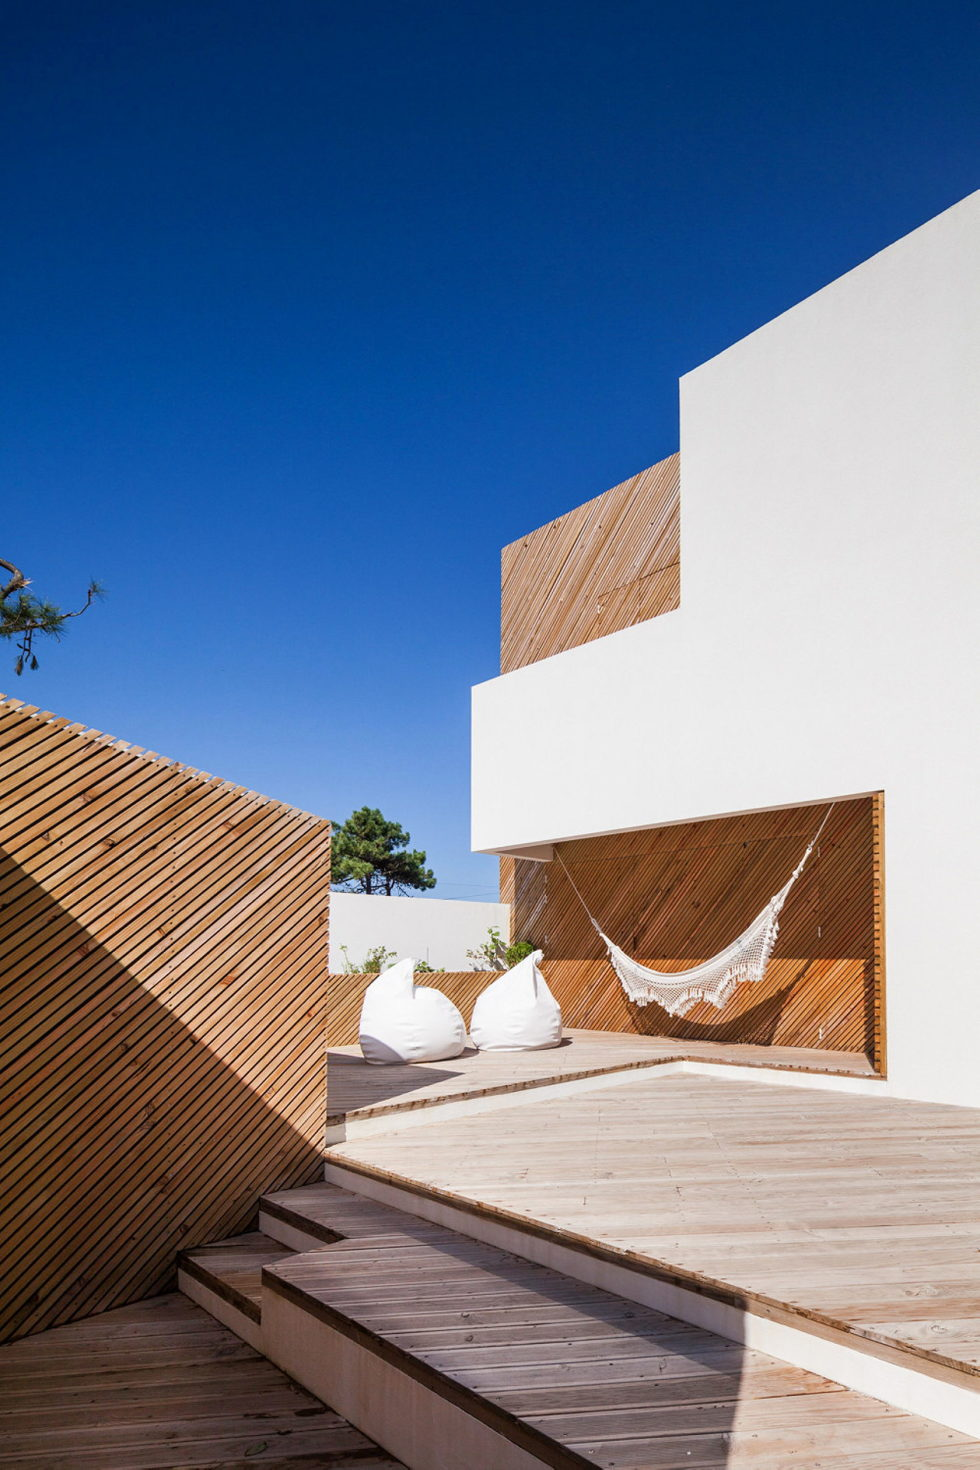 SilverWoodHouse Project In Portugal From 3r Ernesto Pereira Studio 4